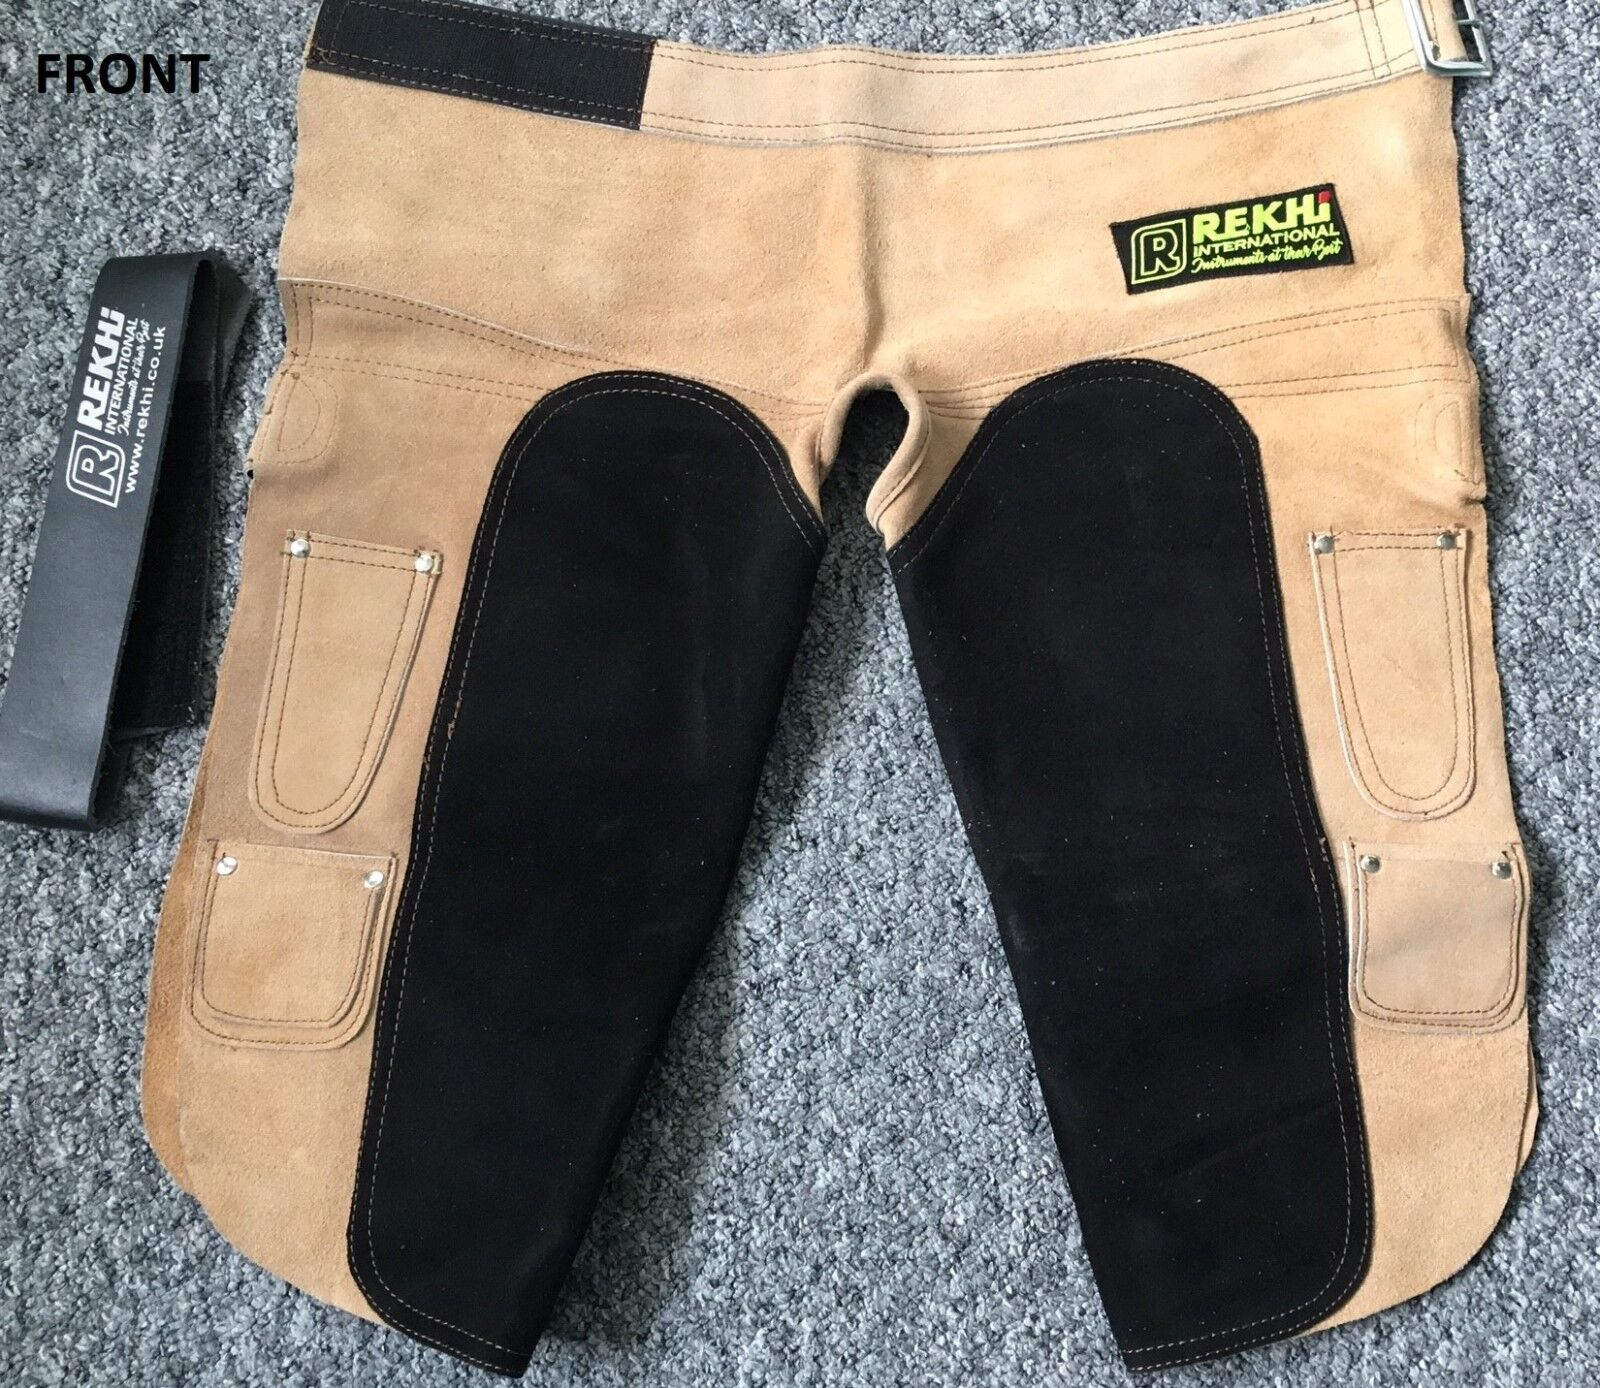 Annual Clearance Farrier APRON Chap Full SUEDE Leather Chaps